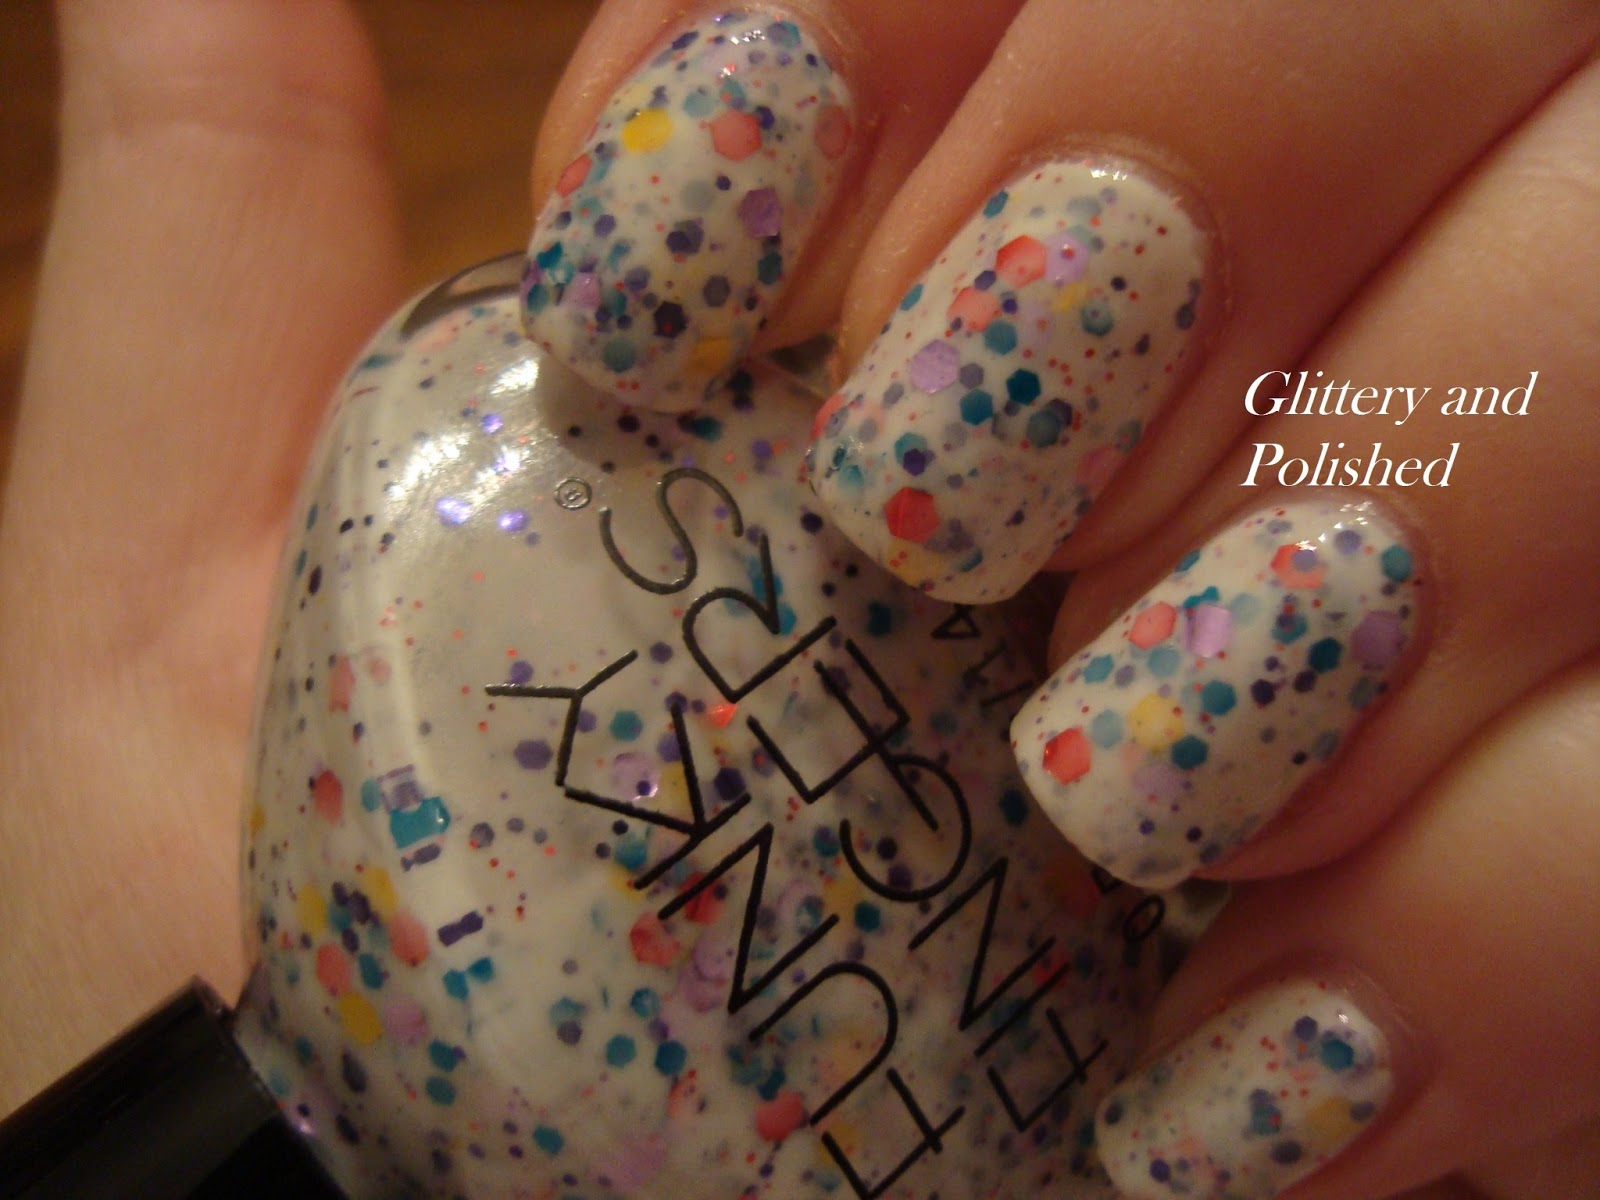 Glittery and Polished: Try the Untrieds: Funky Fingers Jawbreaker!